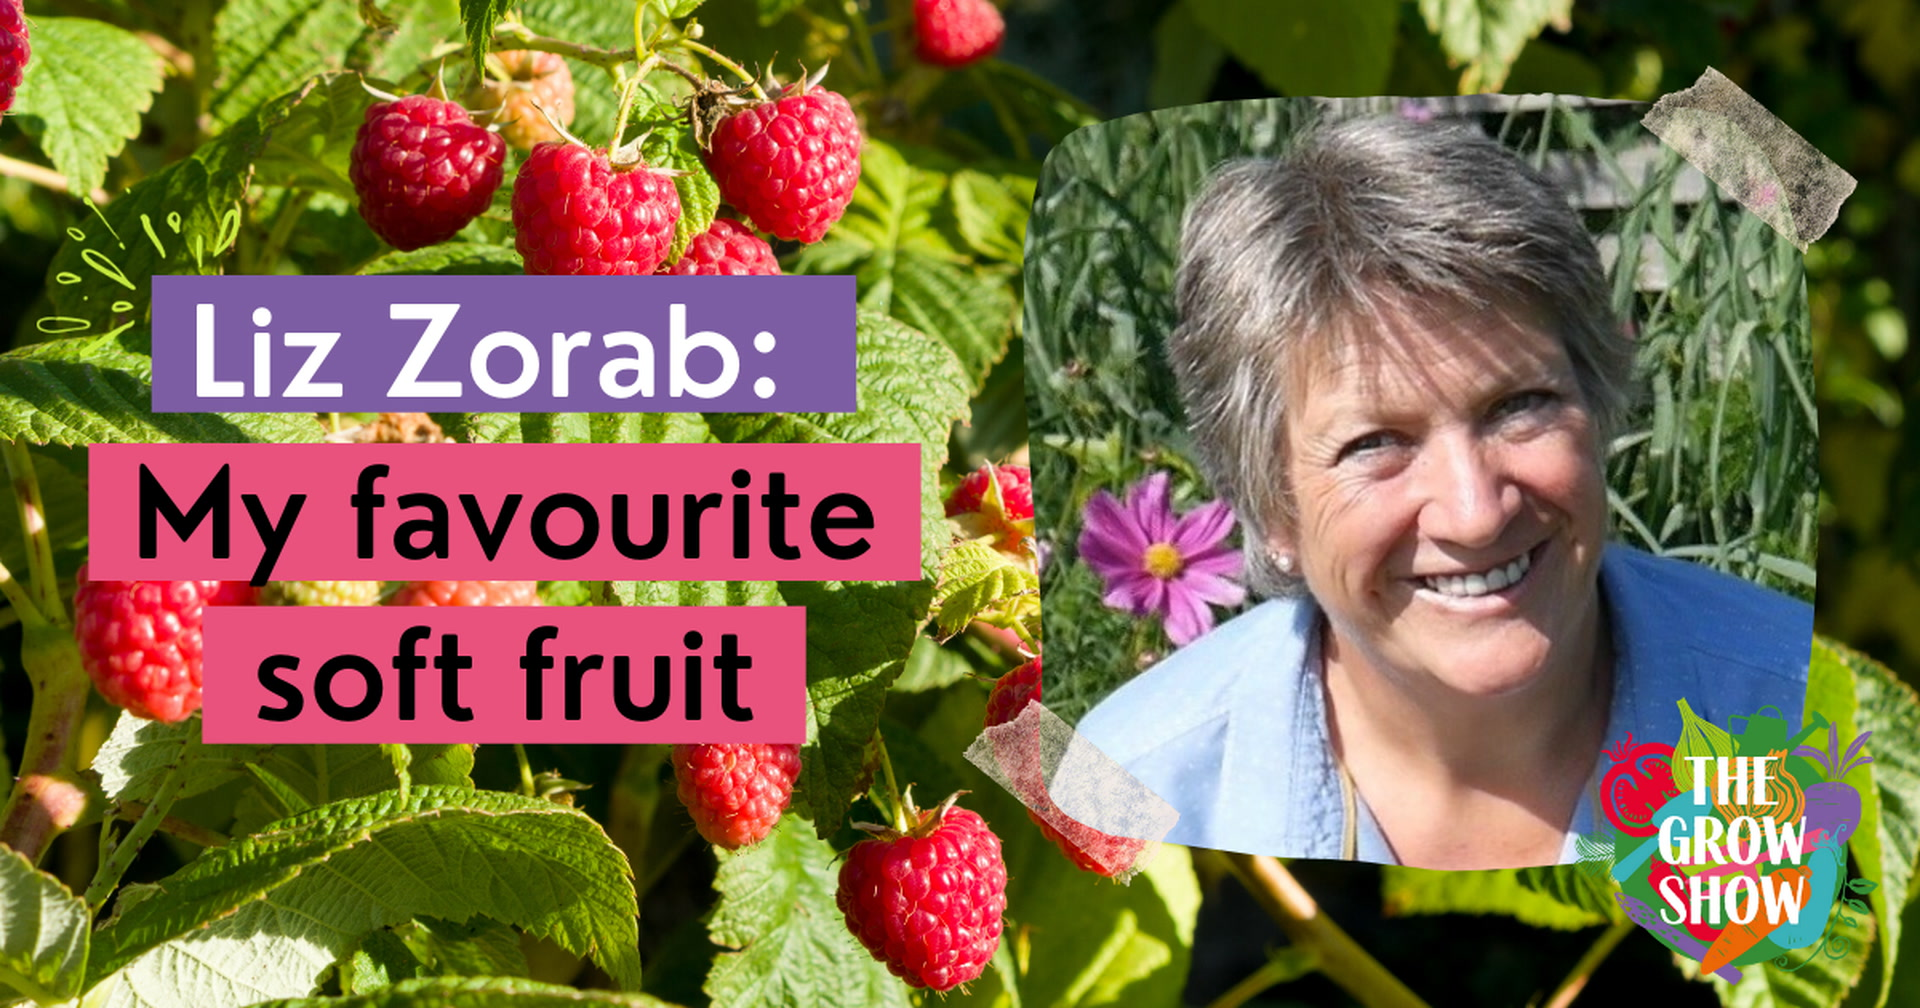 Liz Zorab: My favourite soft fruit